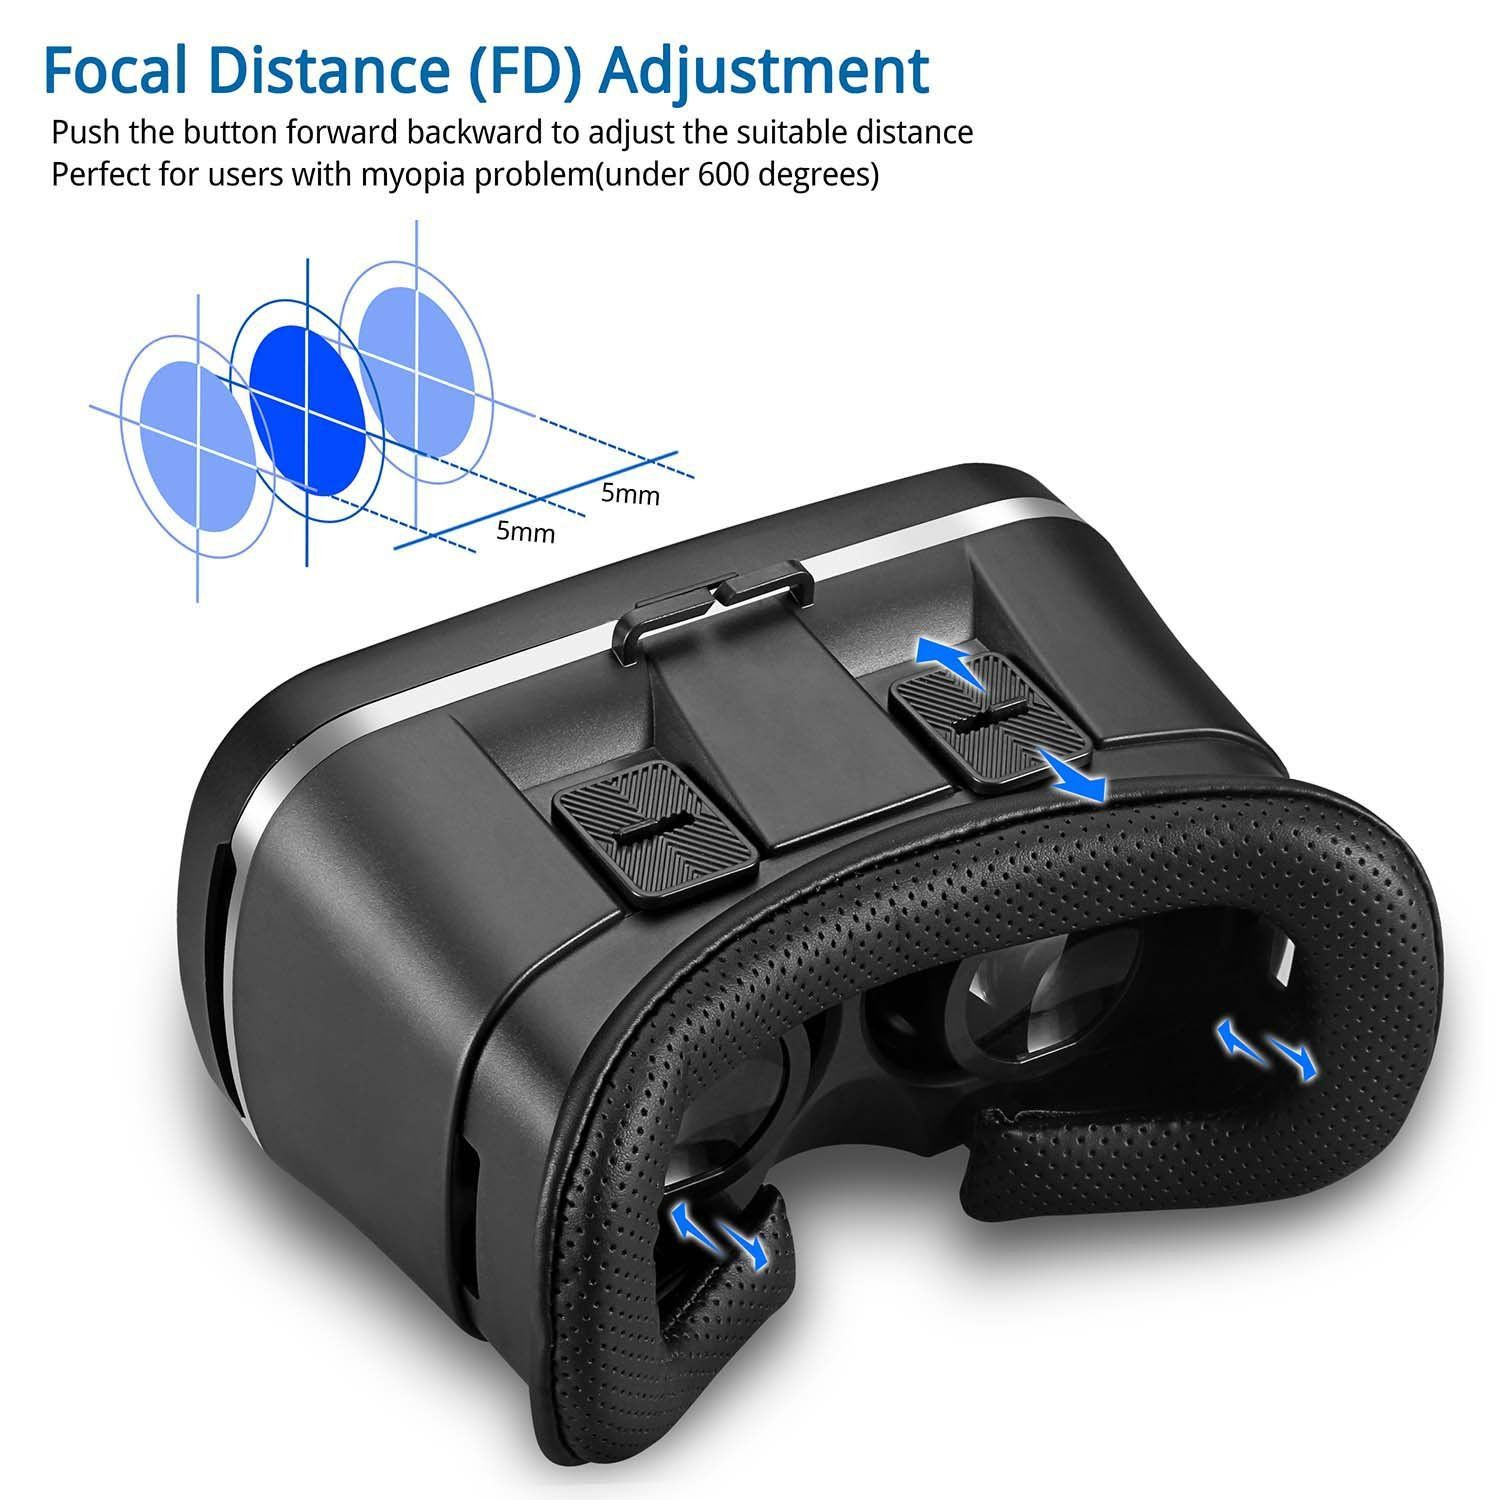 1e2be58116a VR Headset Canbor VR Goggles Virtual Reality Headset VR Glasses for 3D  Video Movies Games for Apple iPhone Samsung Huwei HTC More Smartphones      For more ...